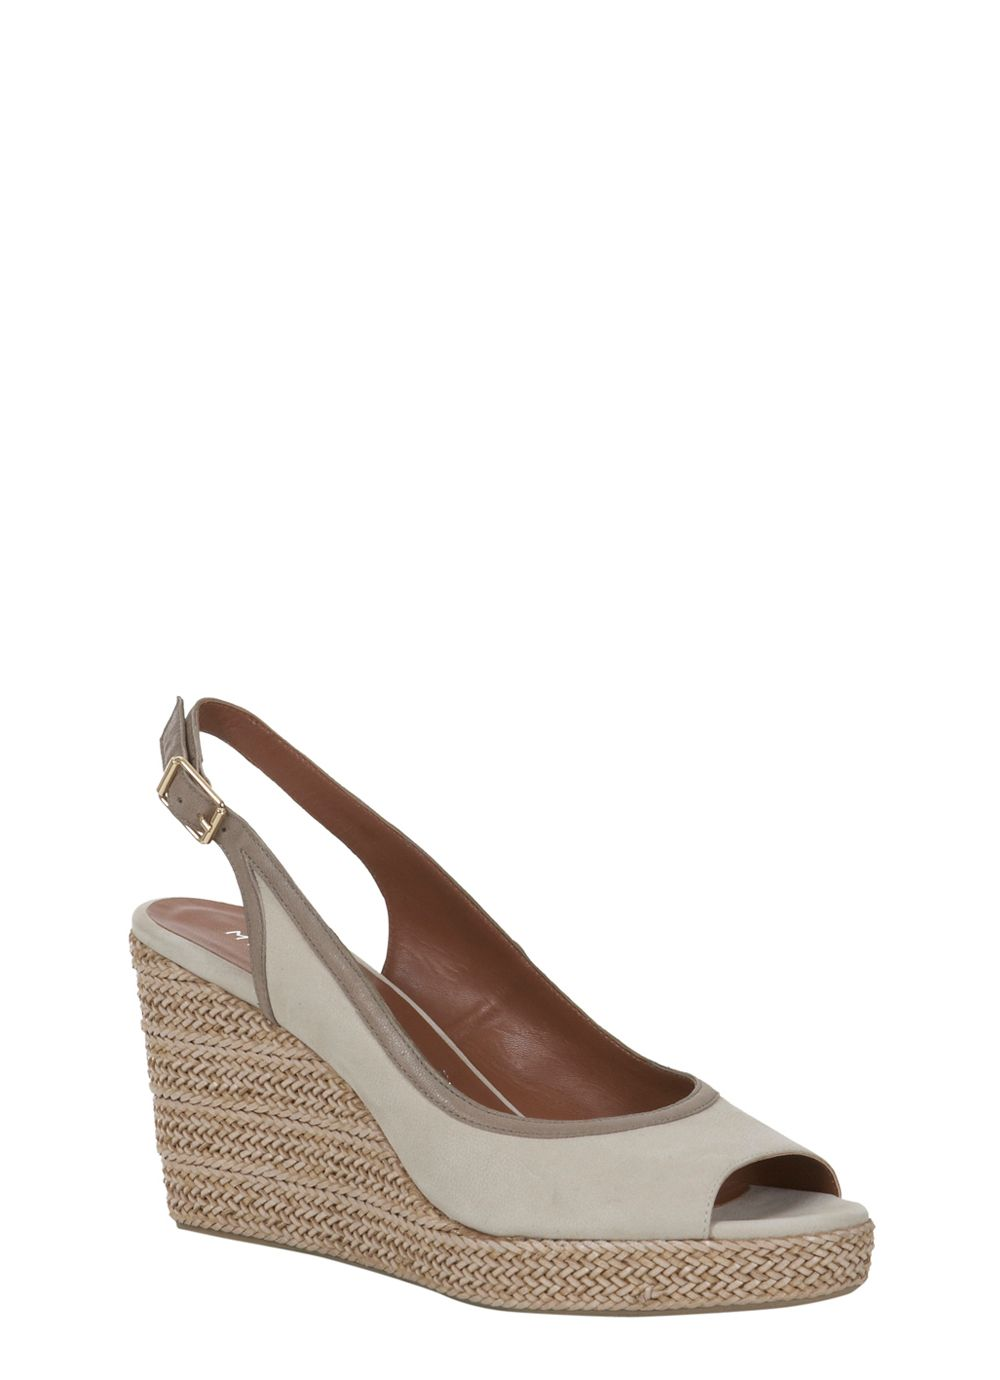 Mia Peep Toe Wedge